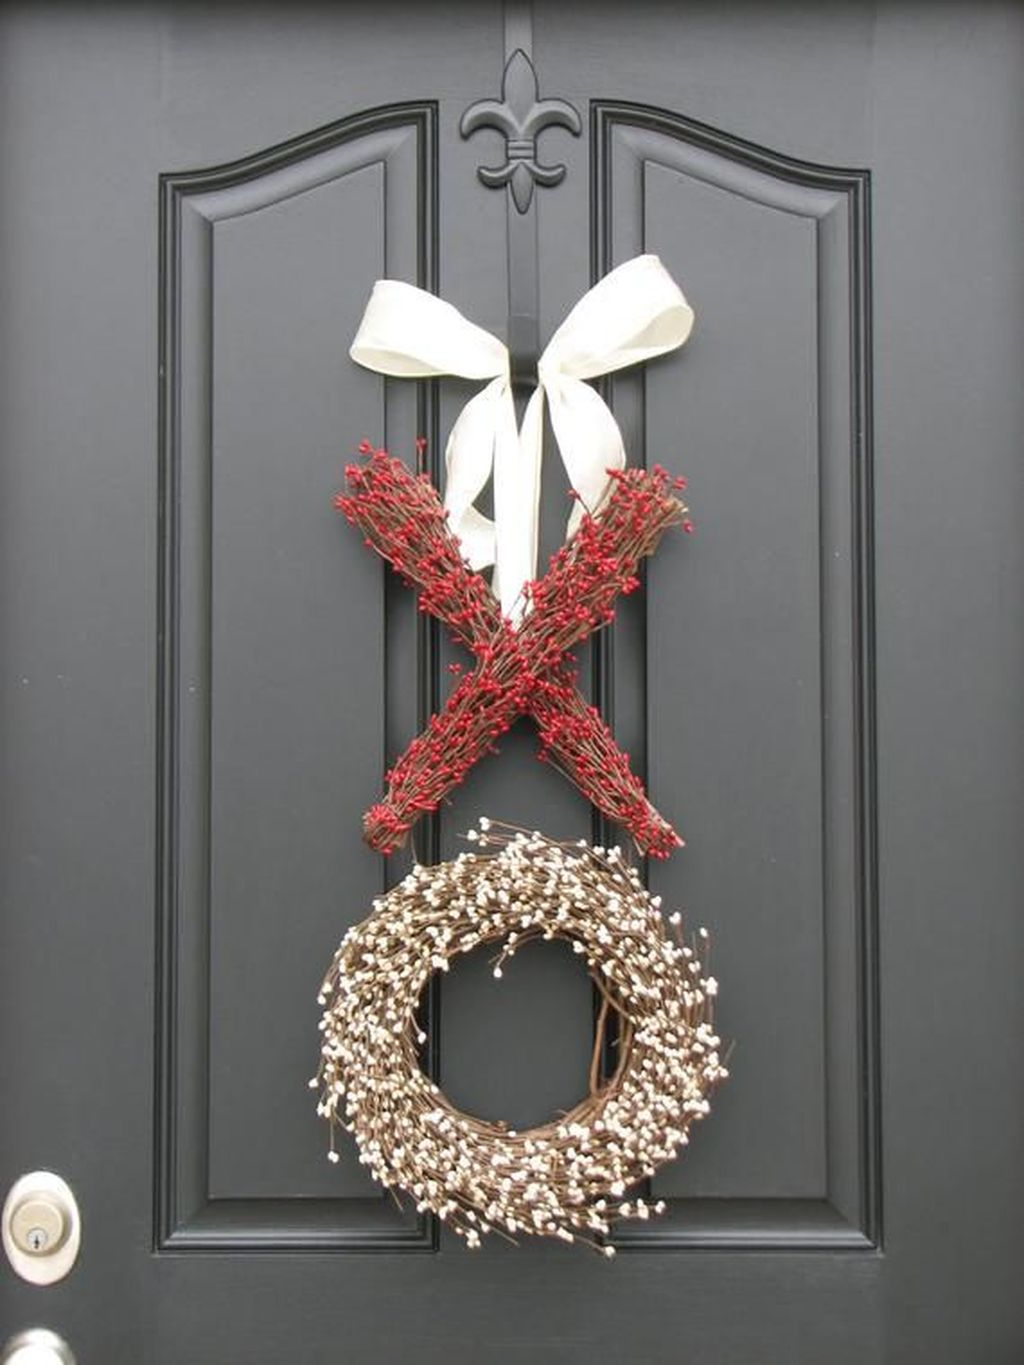 The Best Valentine Door Decorations 13